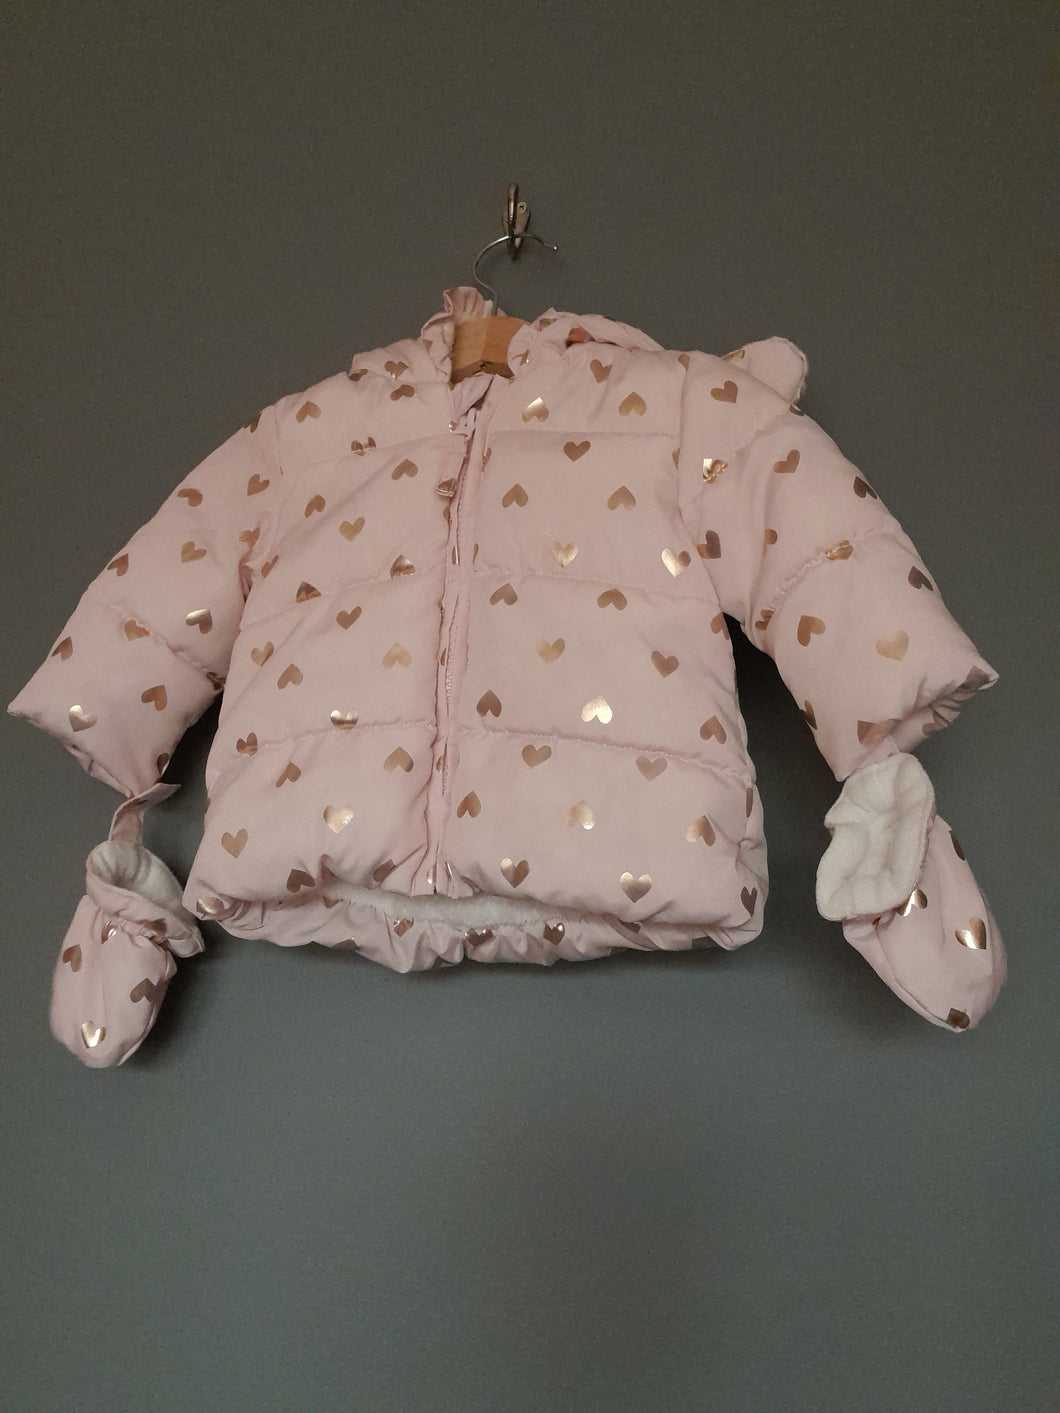 0-3 months padded hooded coat with mitts